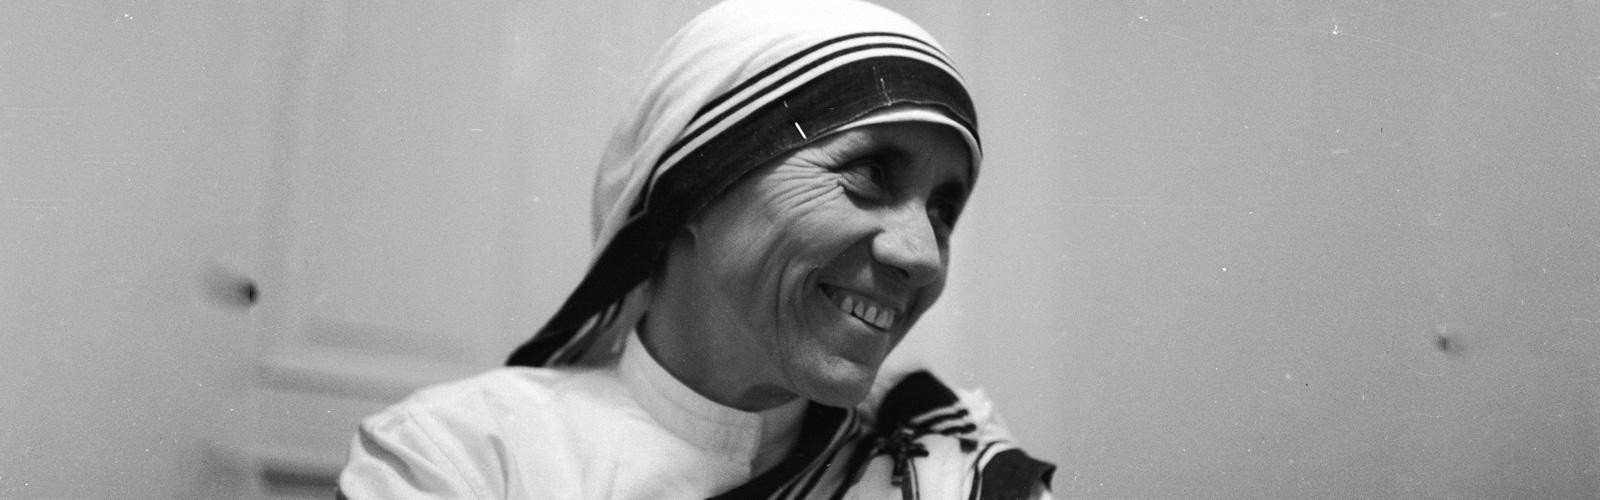 Mother Teresa's Sainthood is a Fraud, Just Like She Was.